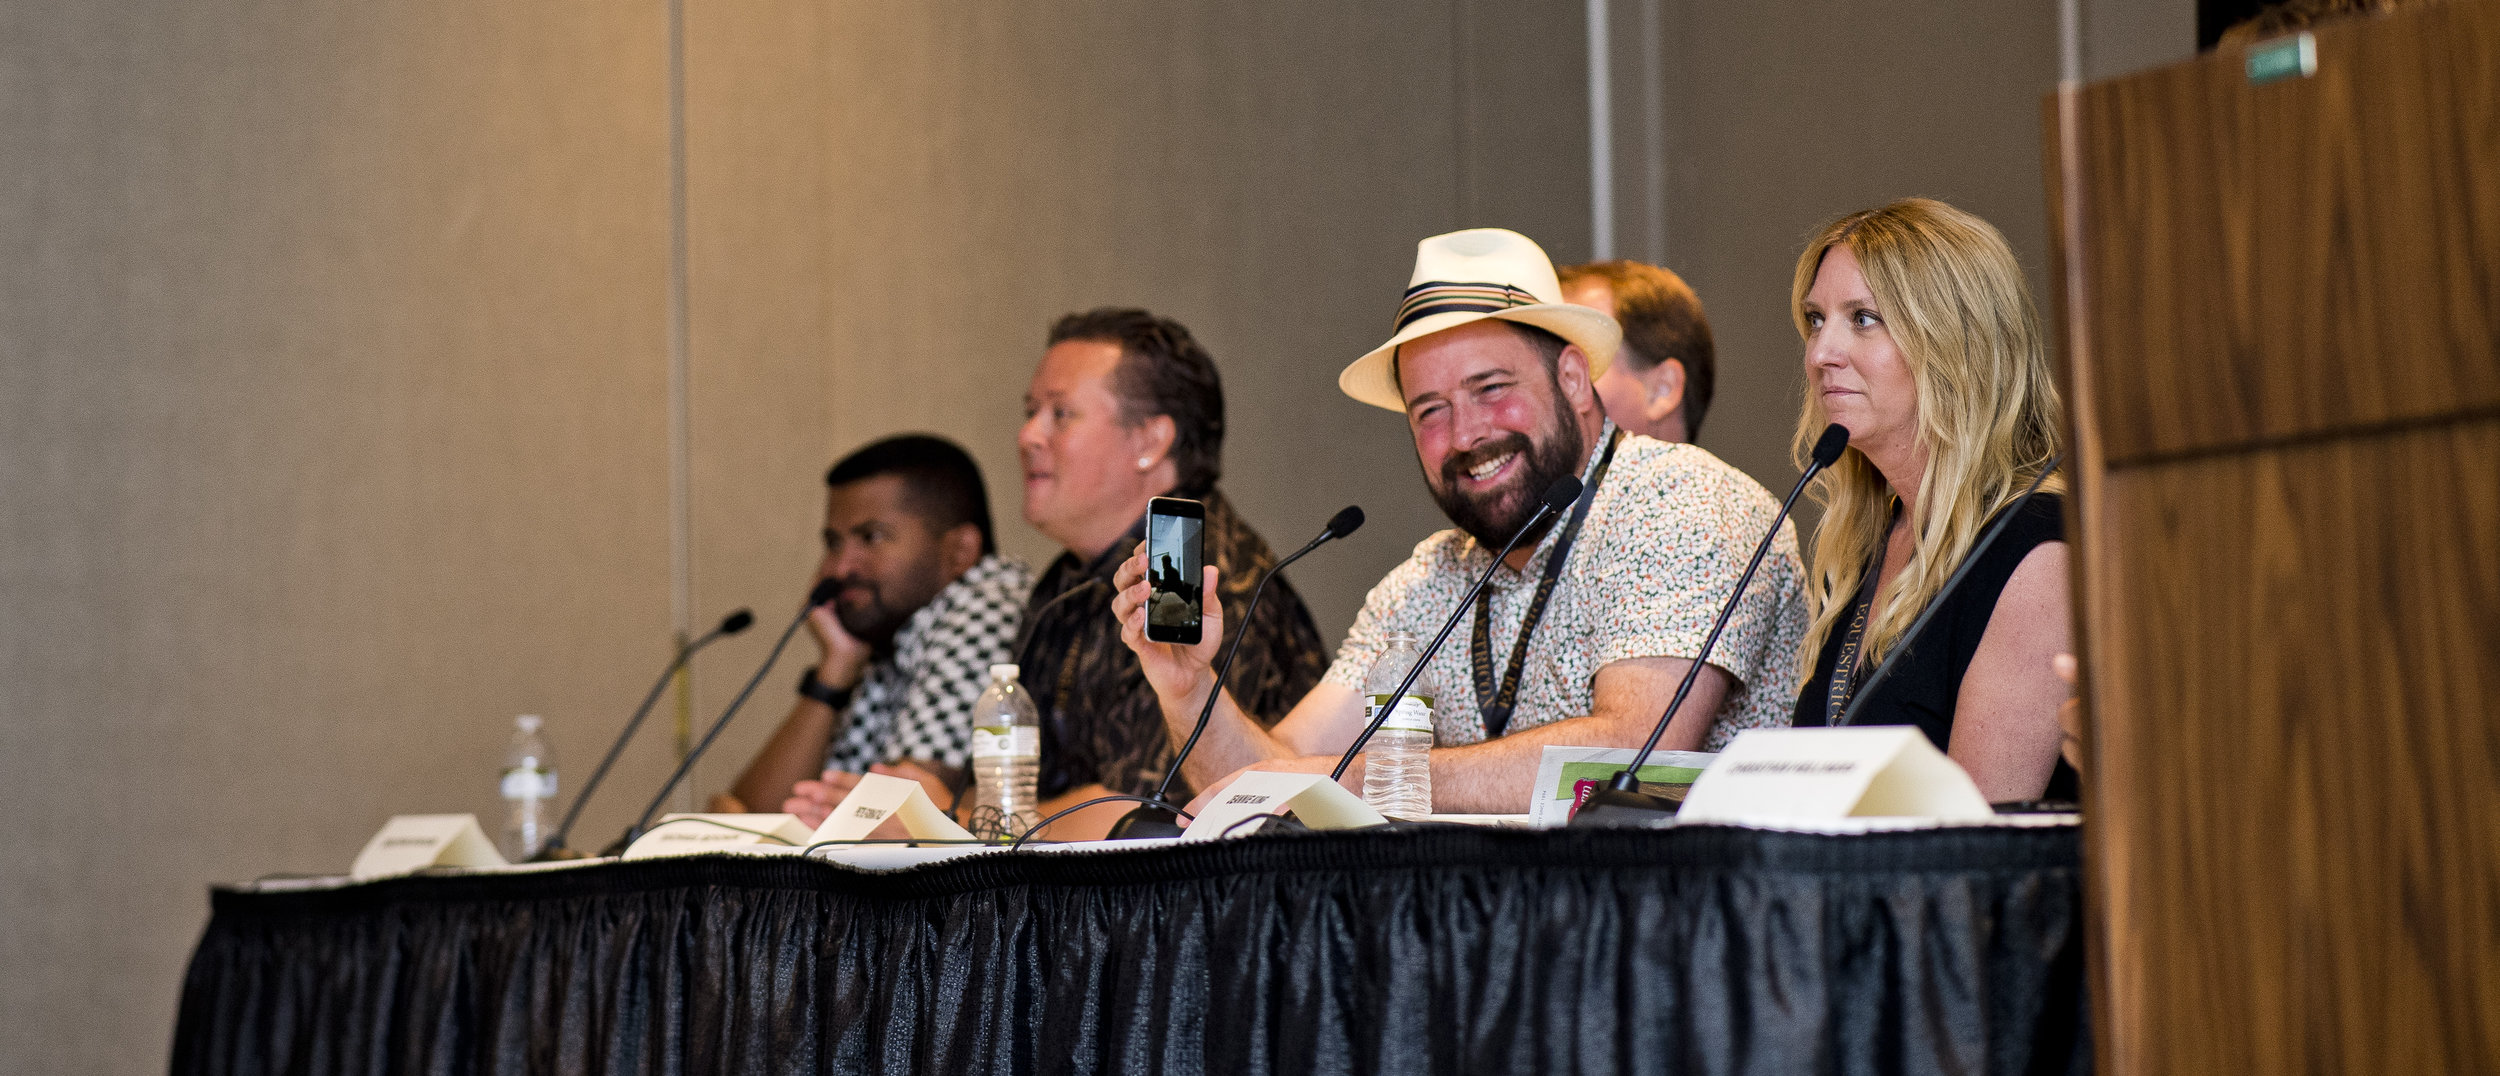 Jonathan Kinchen, Paul Matties, Michael Beychok, Peter Fornatale, and Jeannie King discuss Tournament Handicapping at Equestricon® 2017